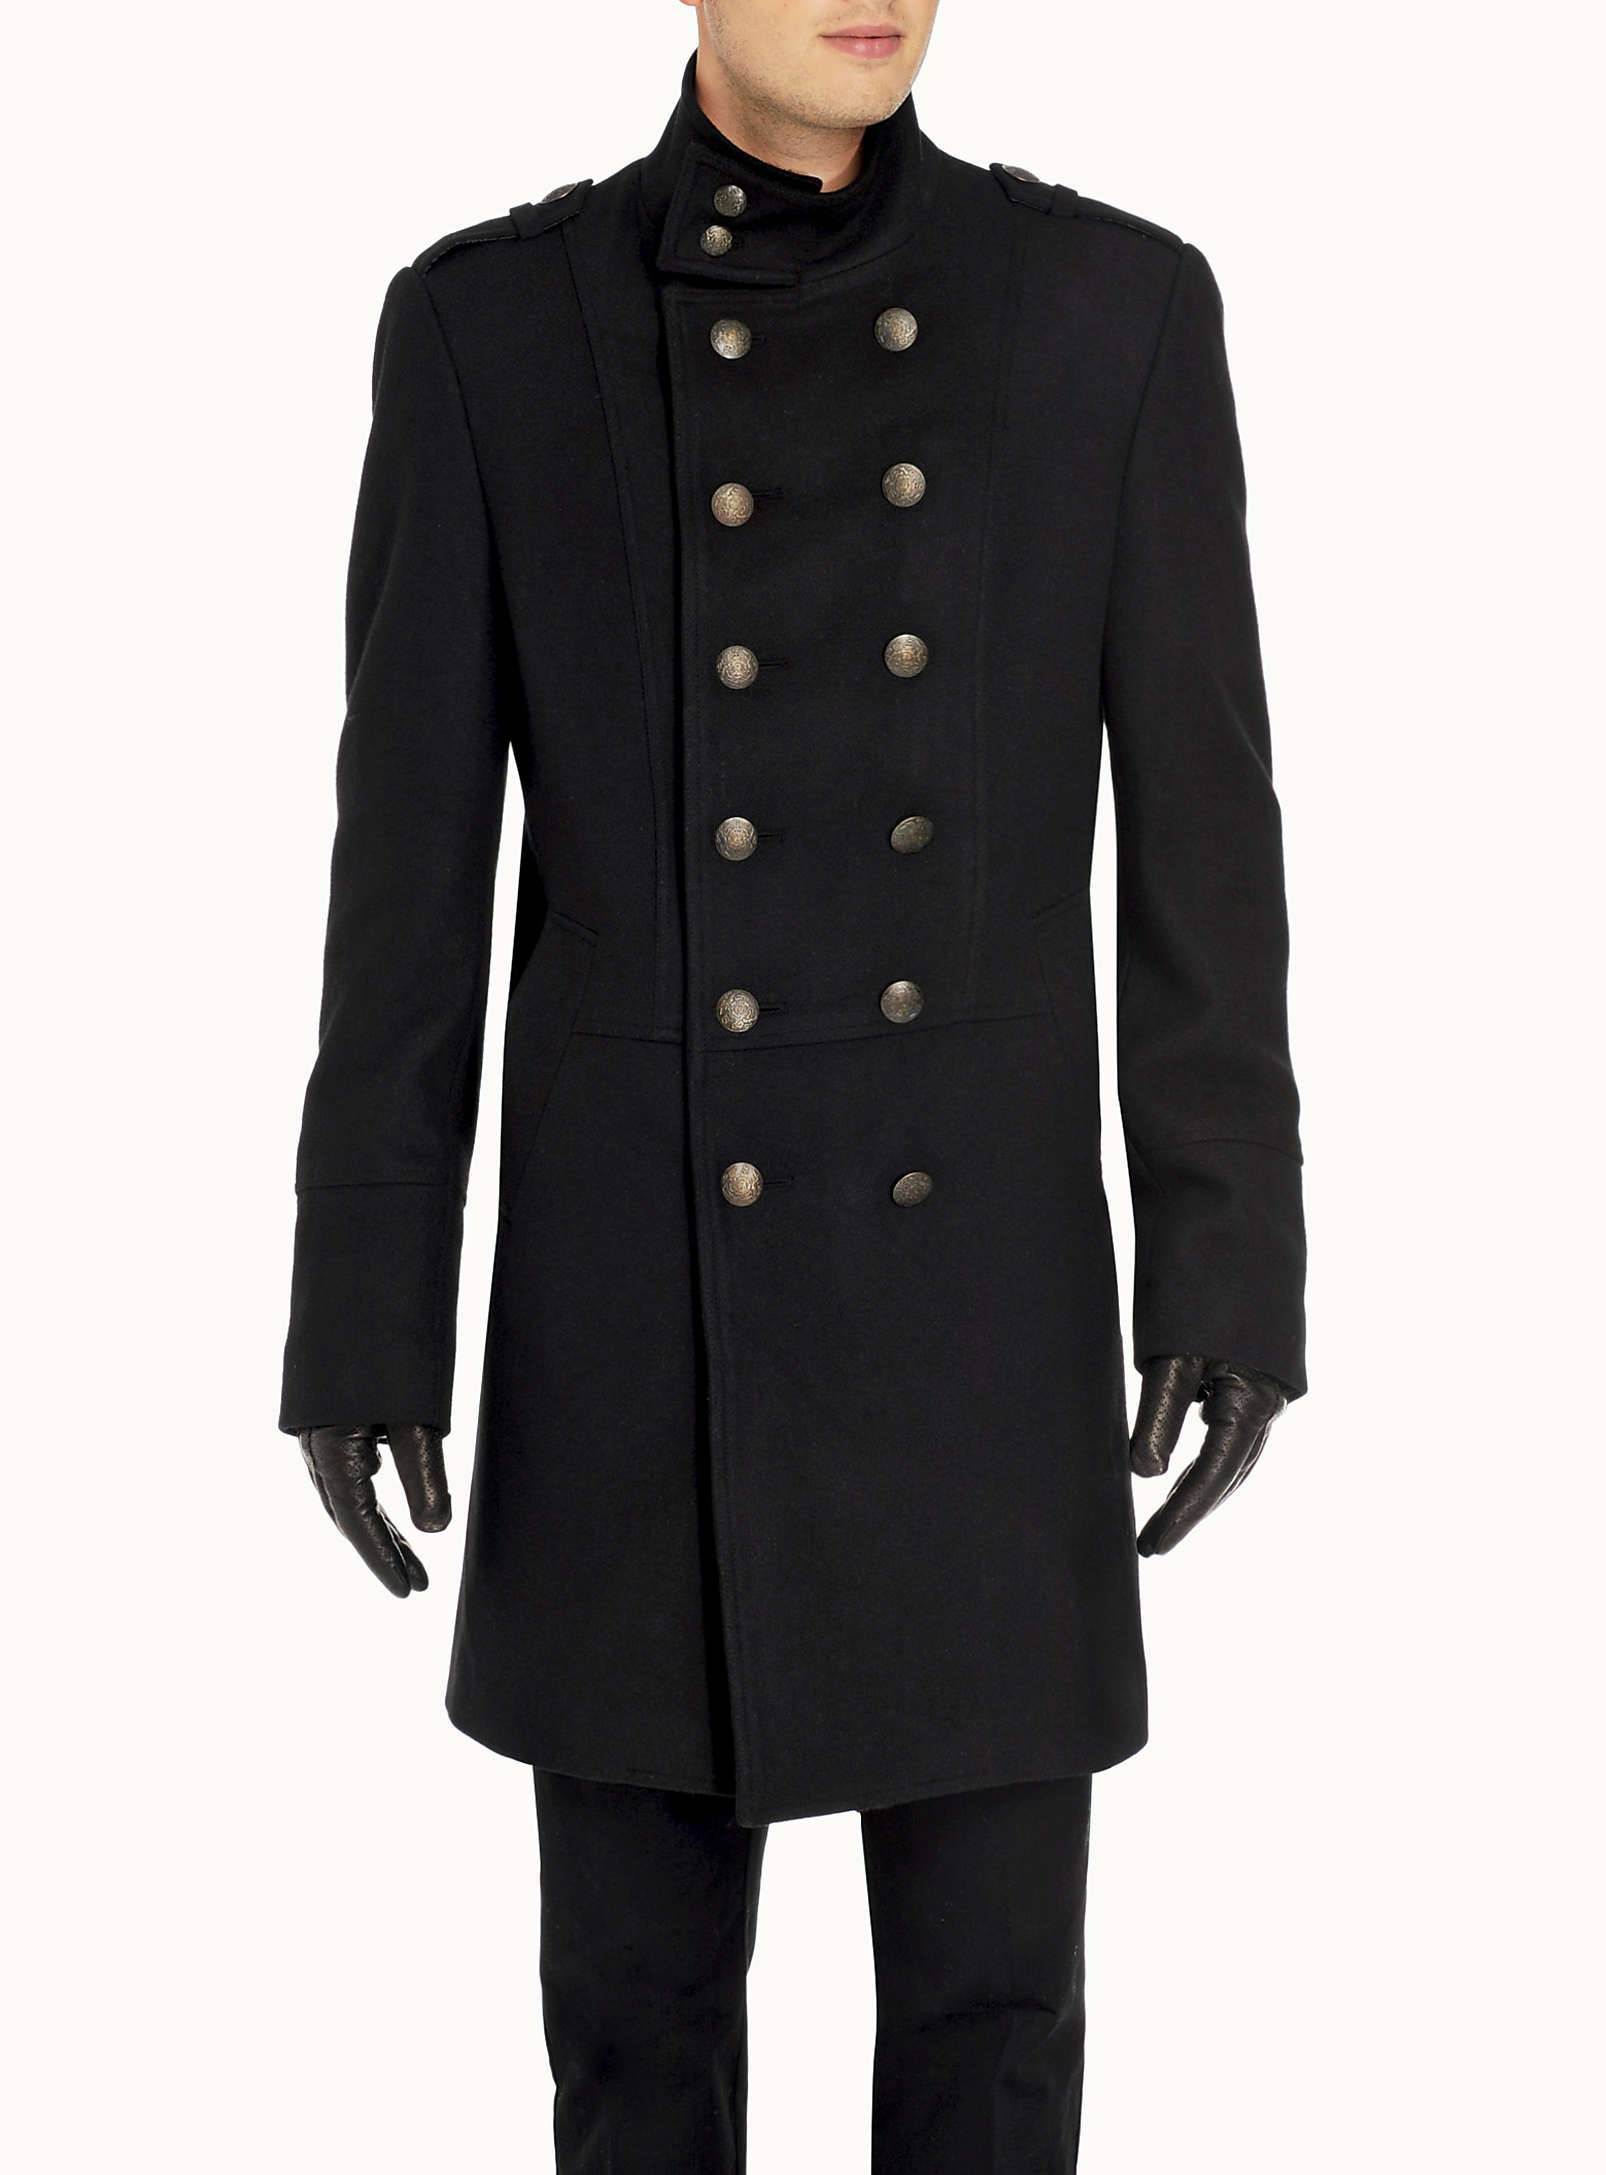 Long military coat, high neck | Men's Business Casual | Pinterest